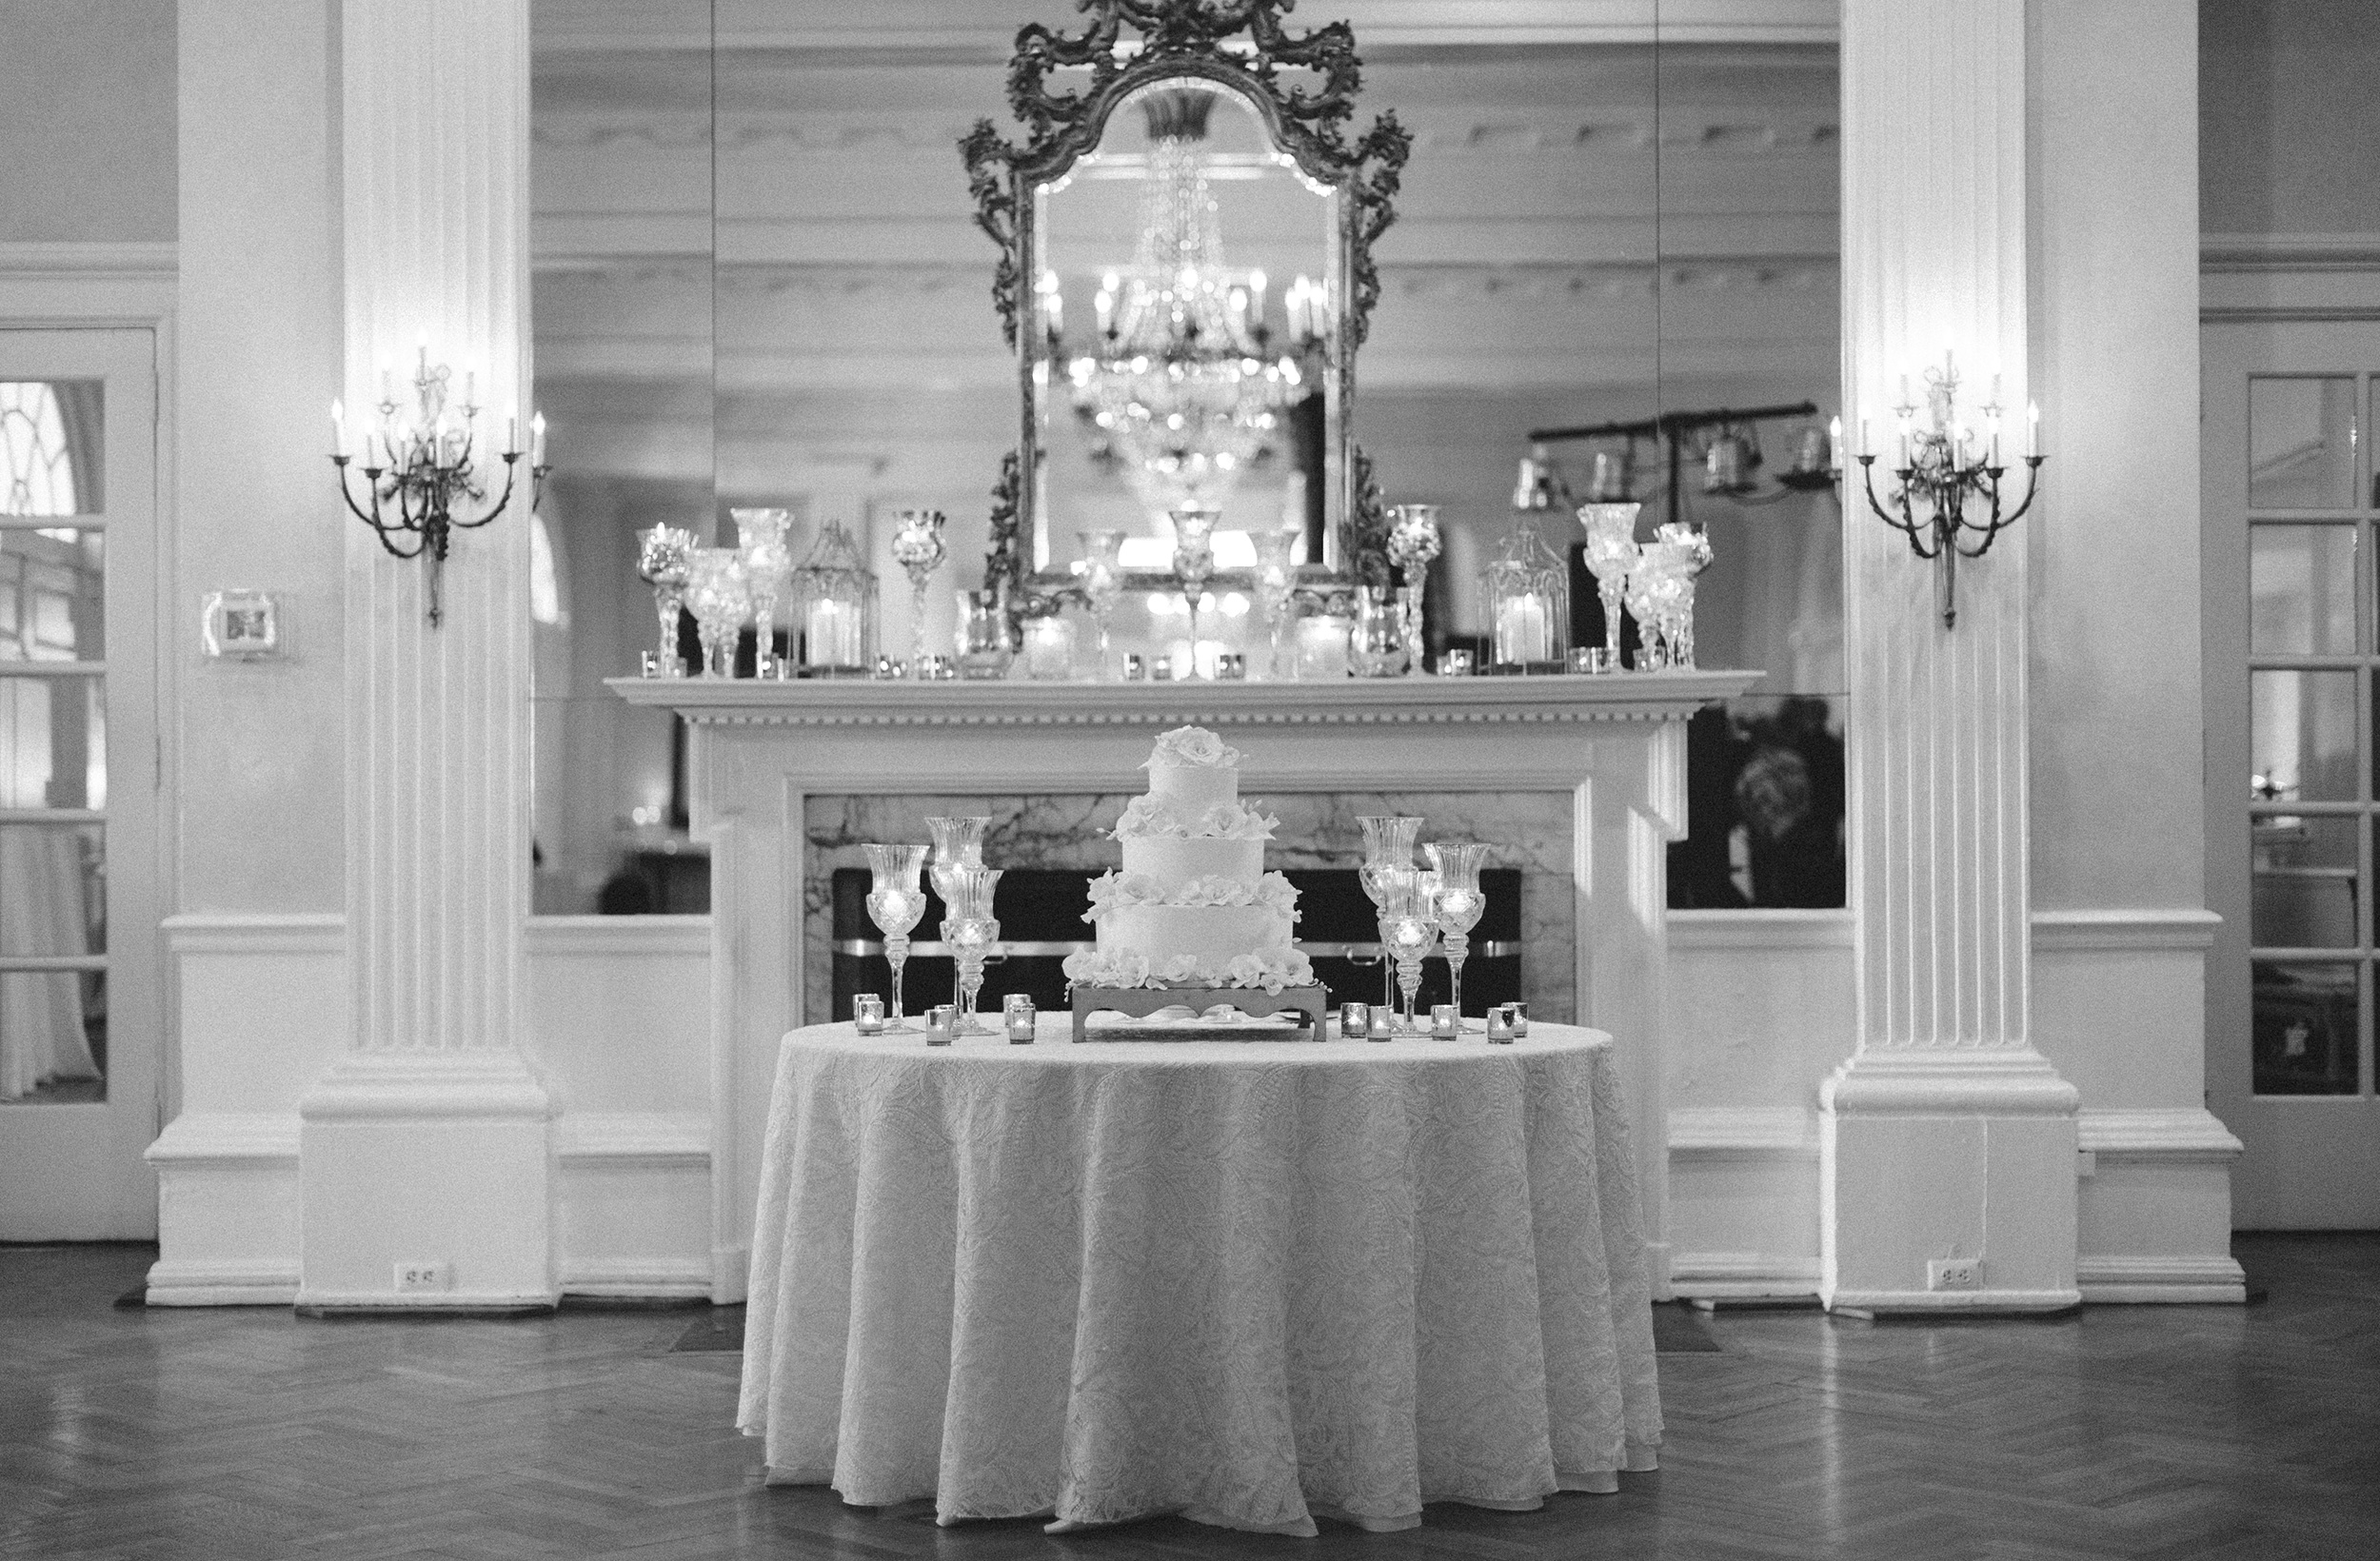 louisville-country-club-wedding-photographer-67.JPG